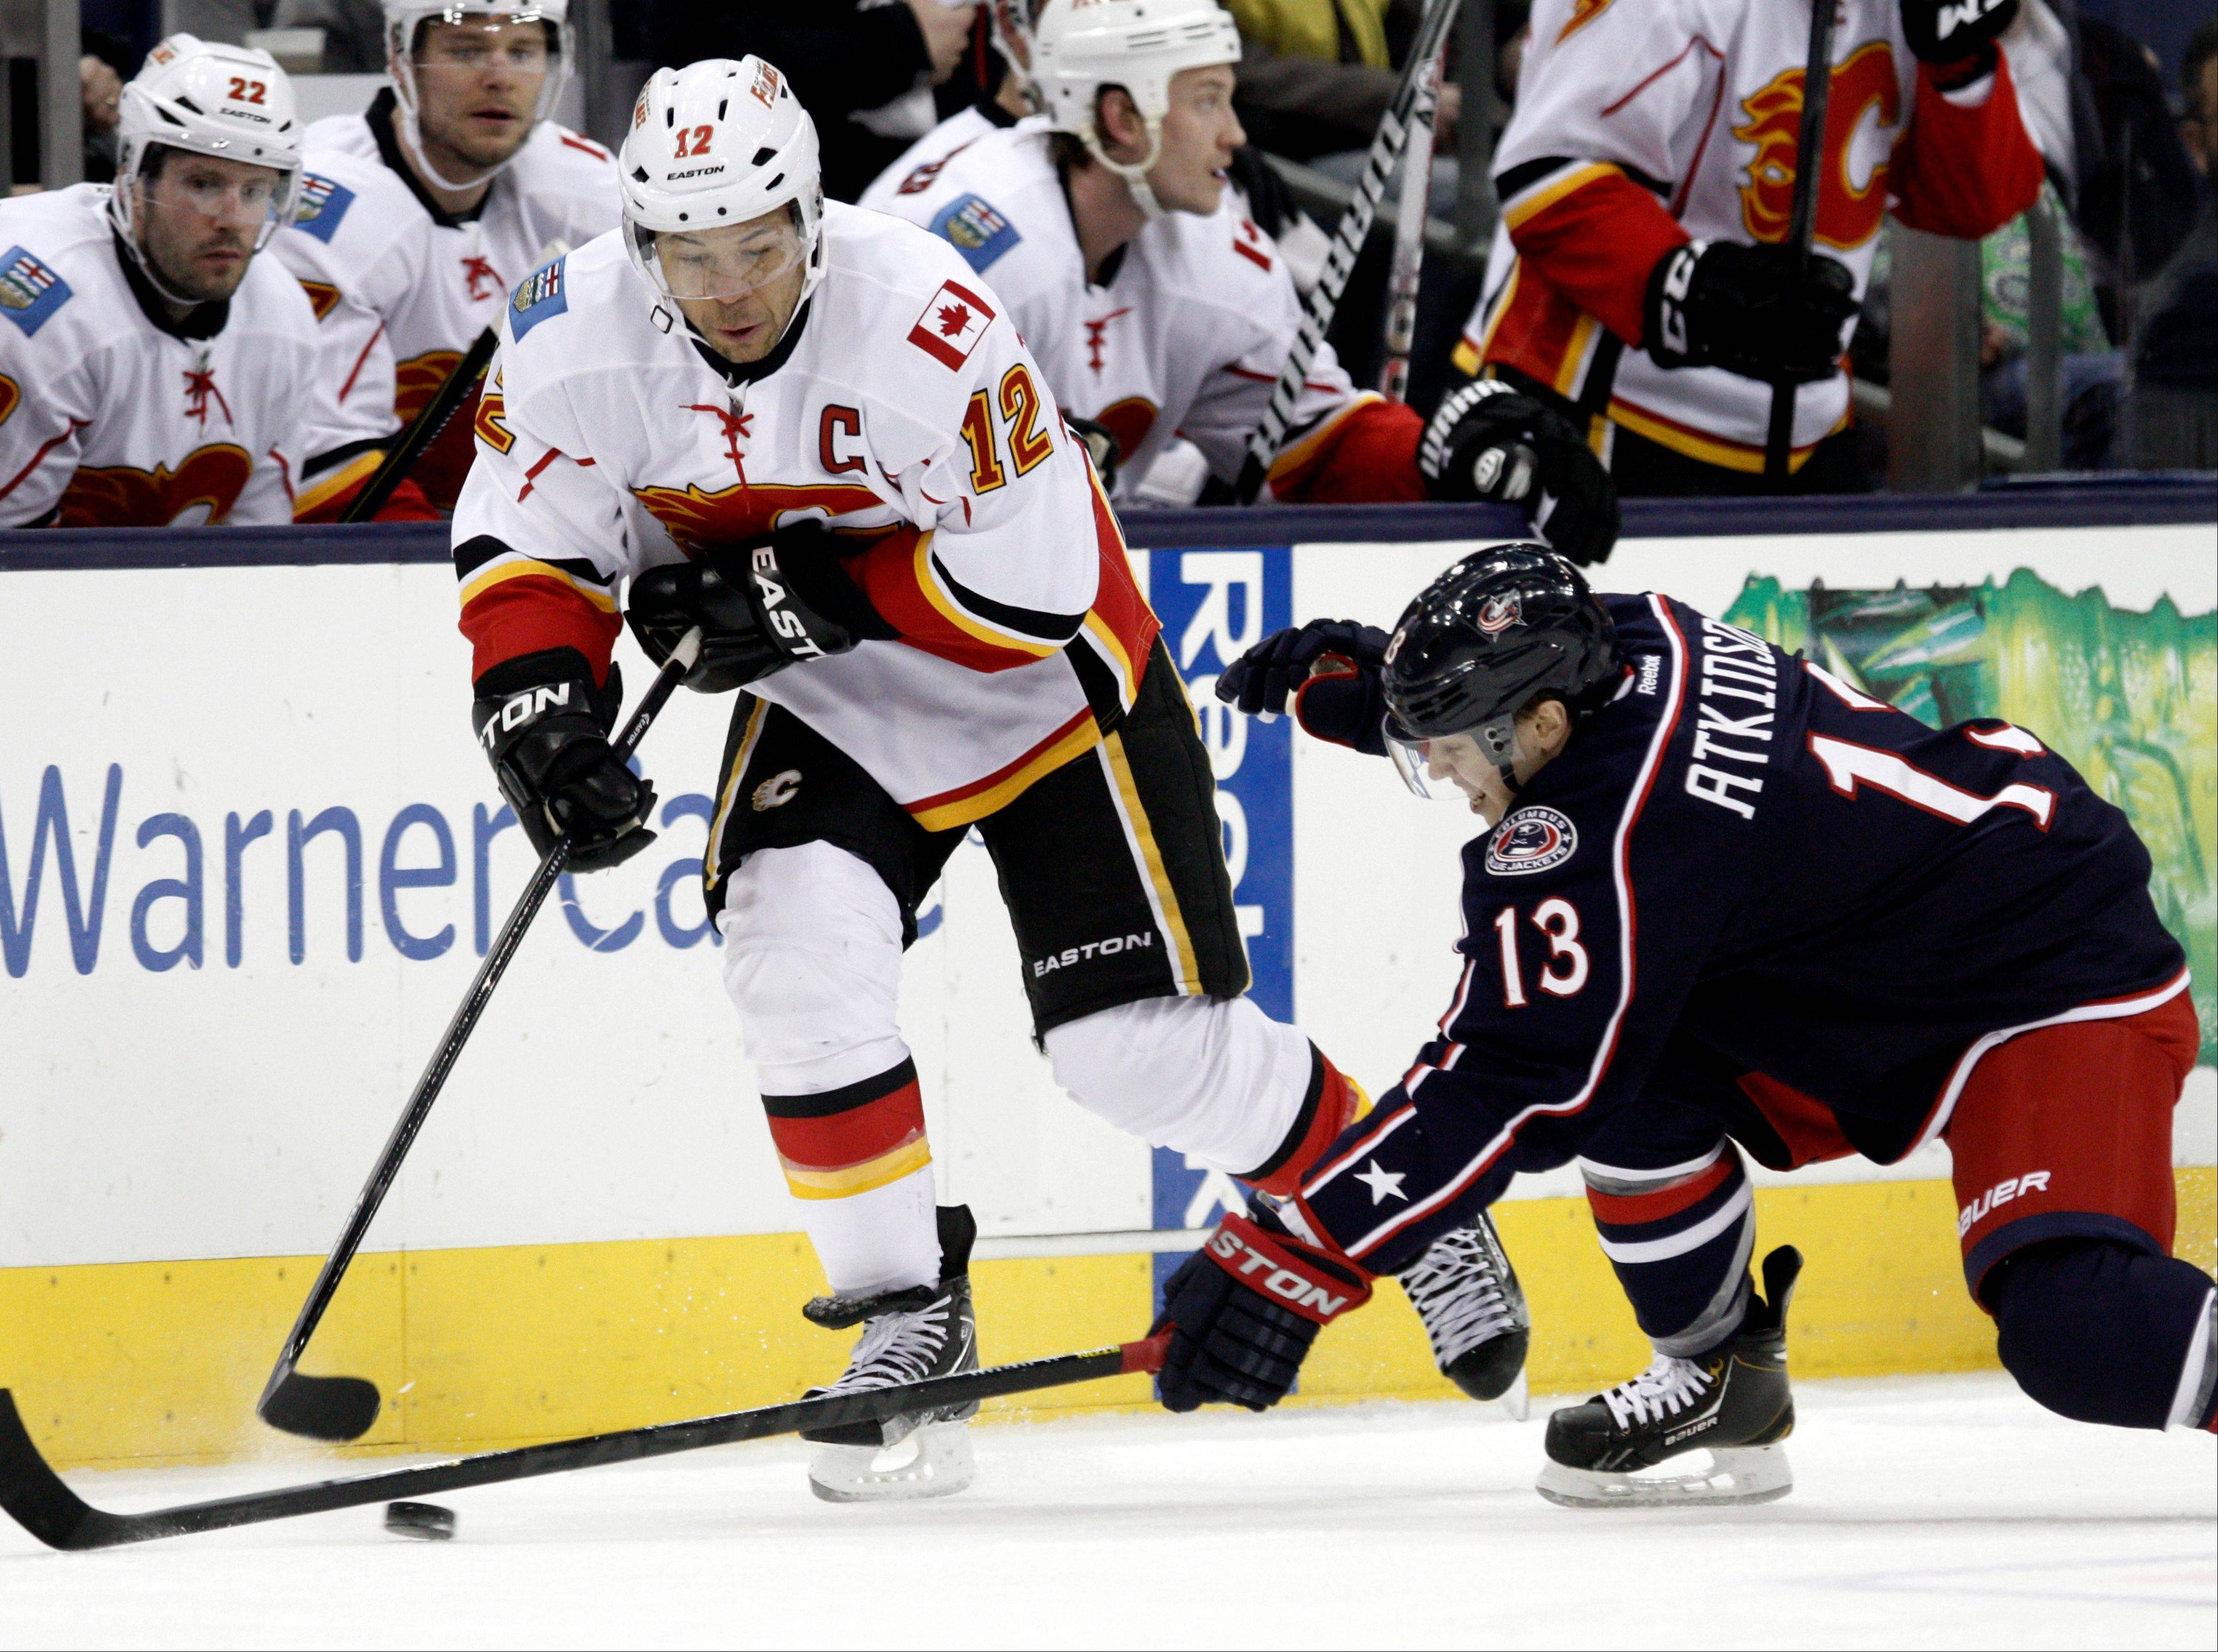 Calgary's Jarome Iginla, left, has reportedly been dealt to Pittsburgh for two prospects and a first-round draft pick.